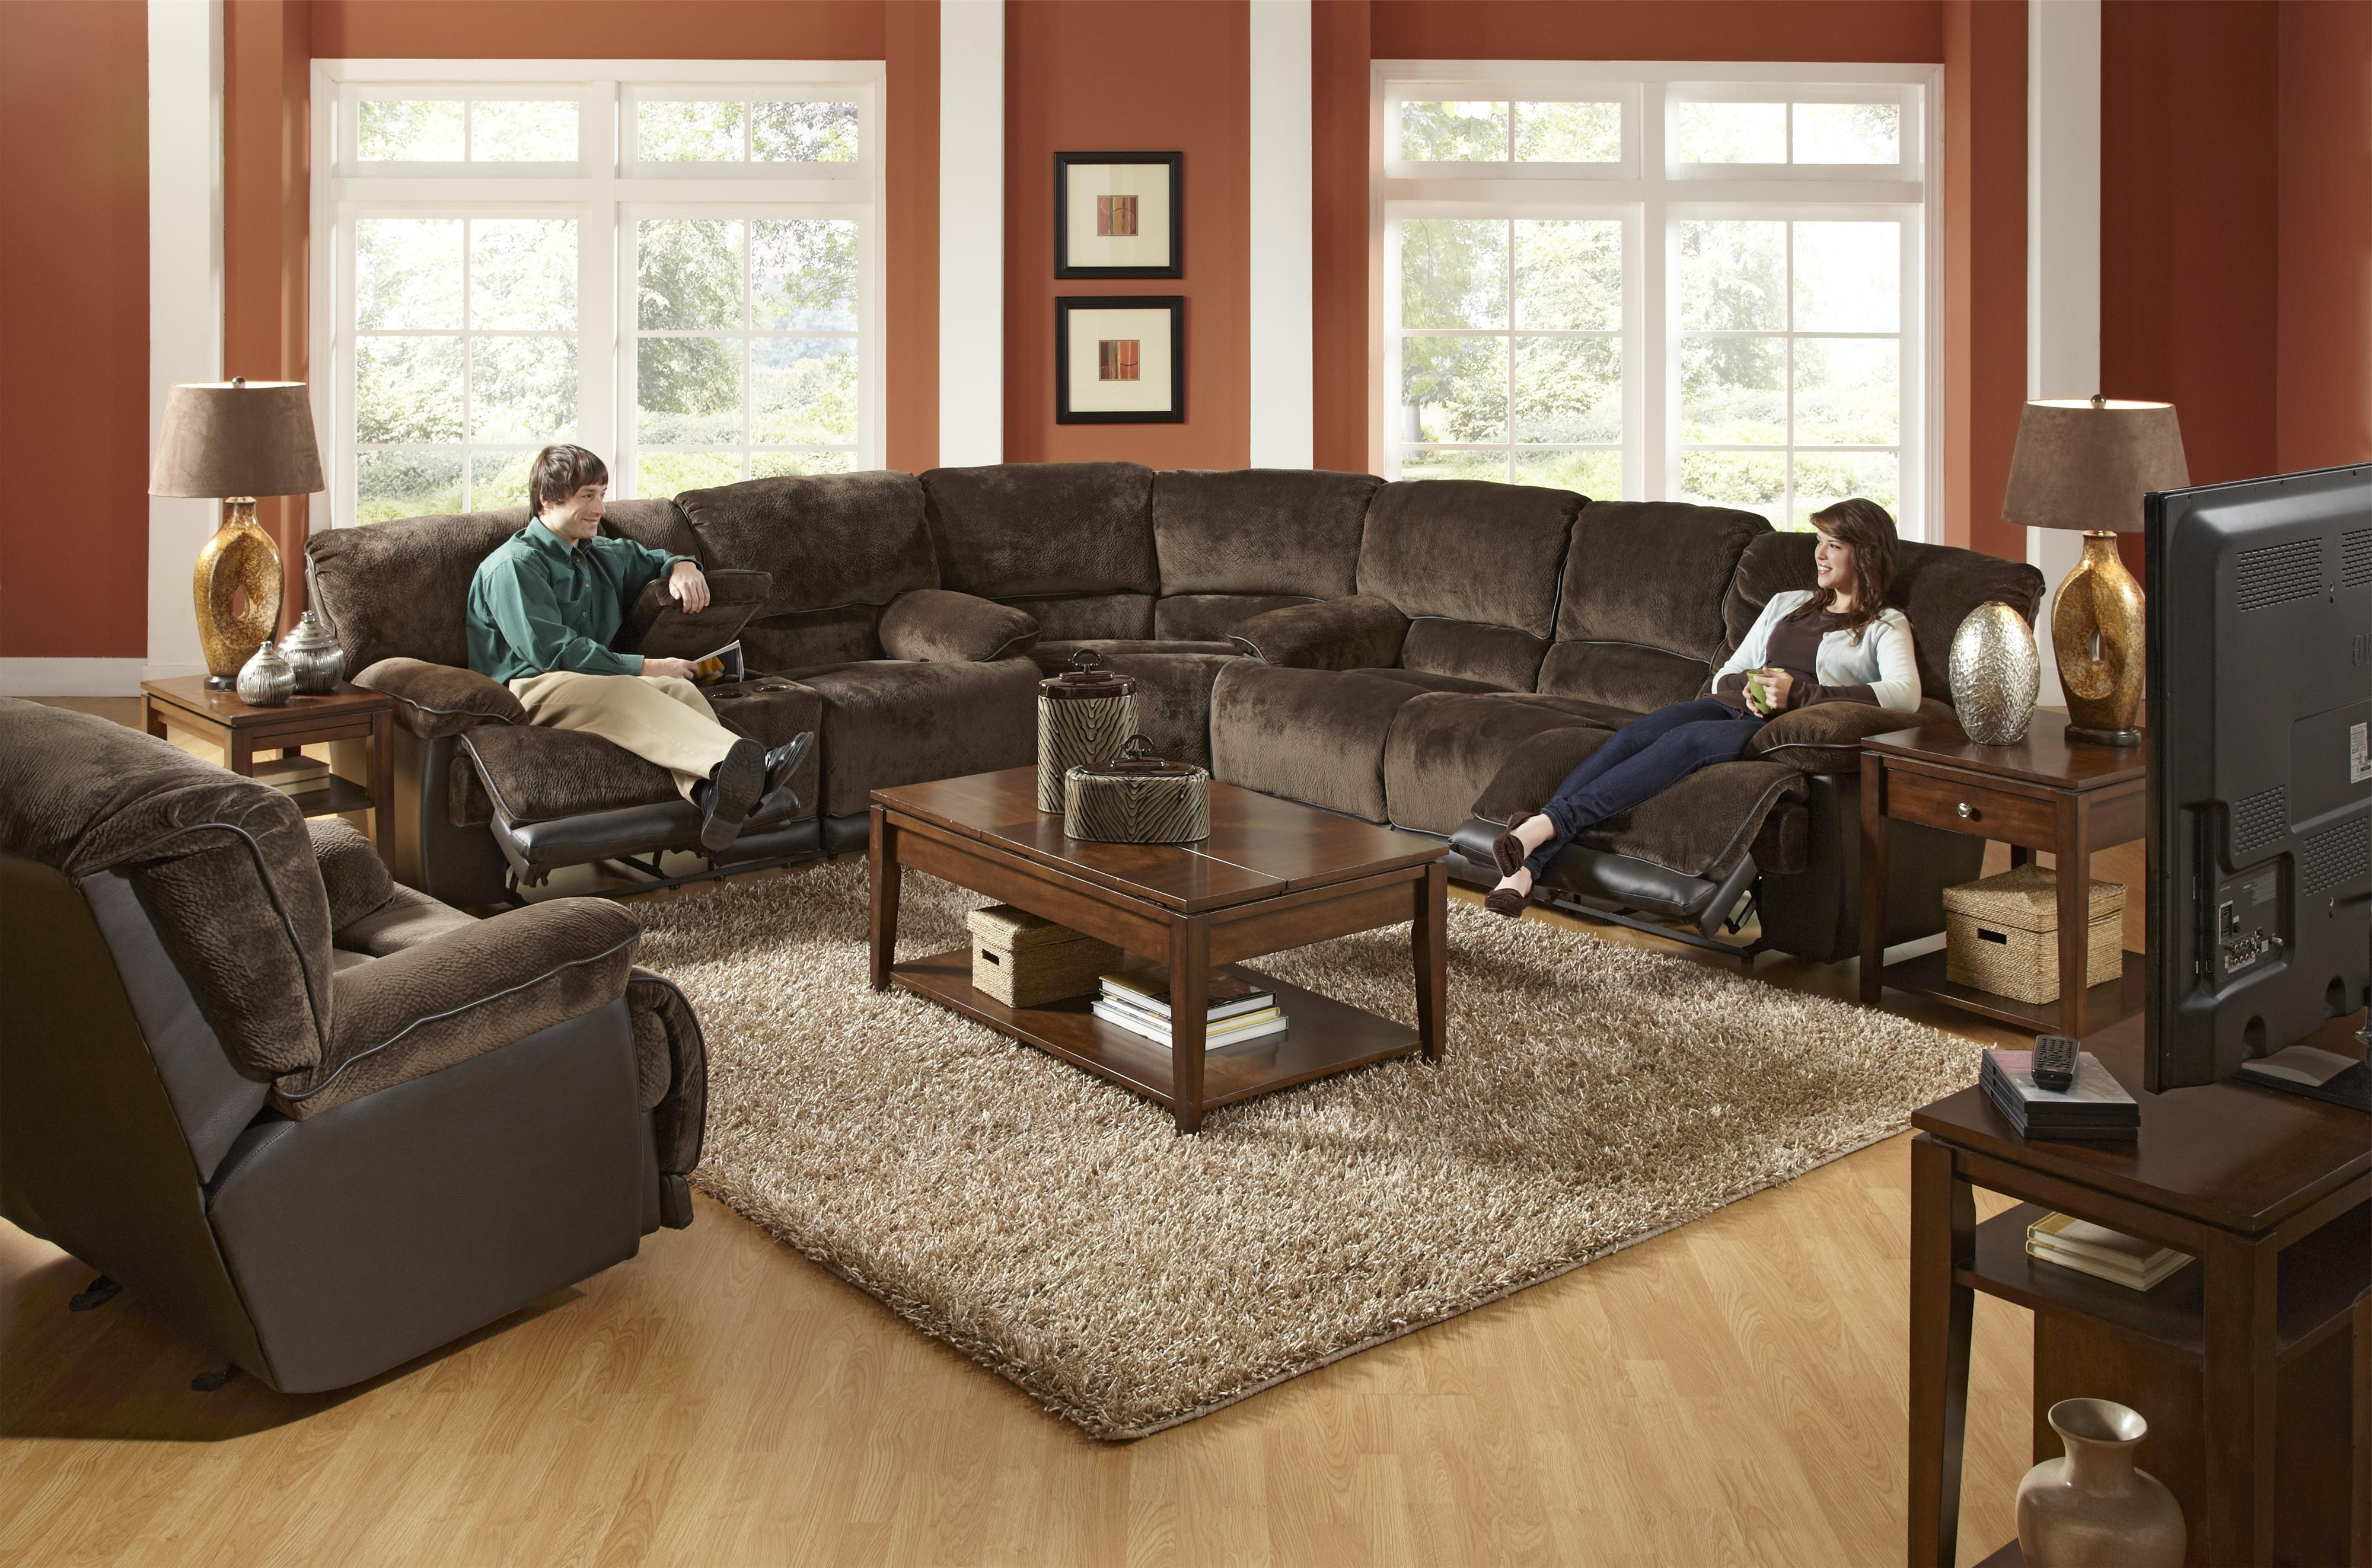 2019 Farmers Furniture Sectional Sofas Within A Reclining Sectional In The Transitional Style! Catnapper (View 1 of 20)